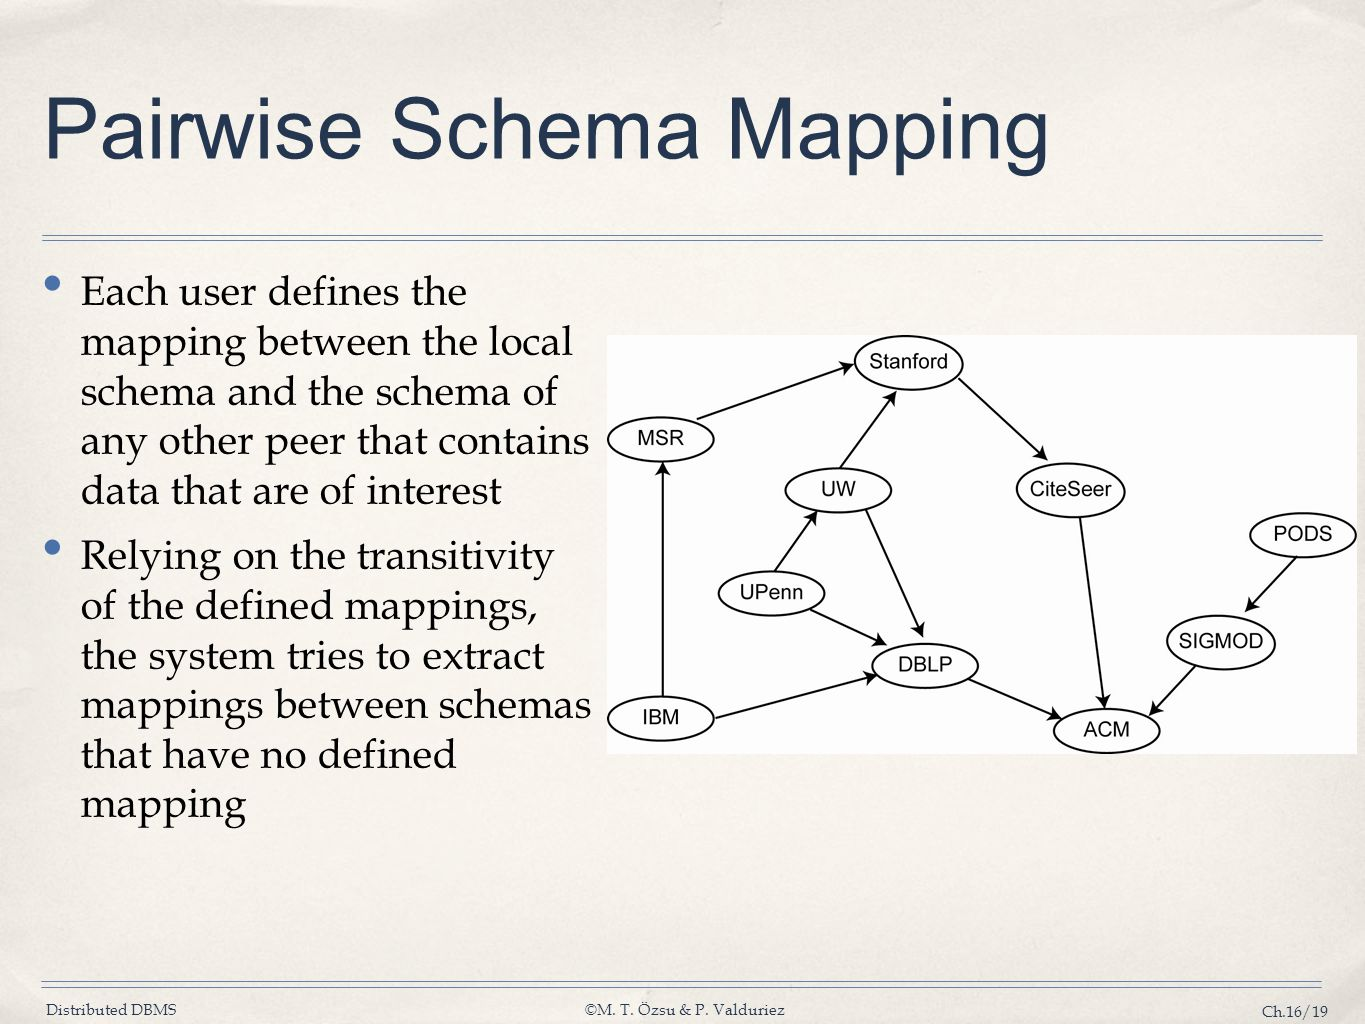 Pairwise Schema Mapping